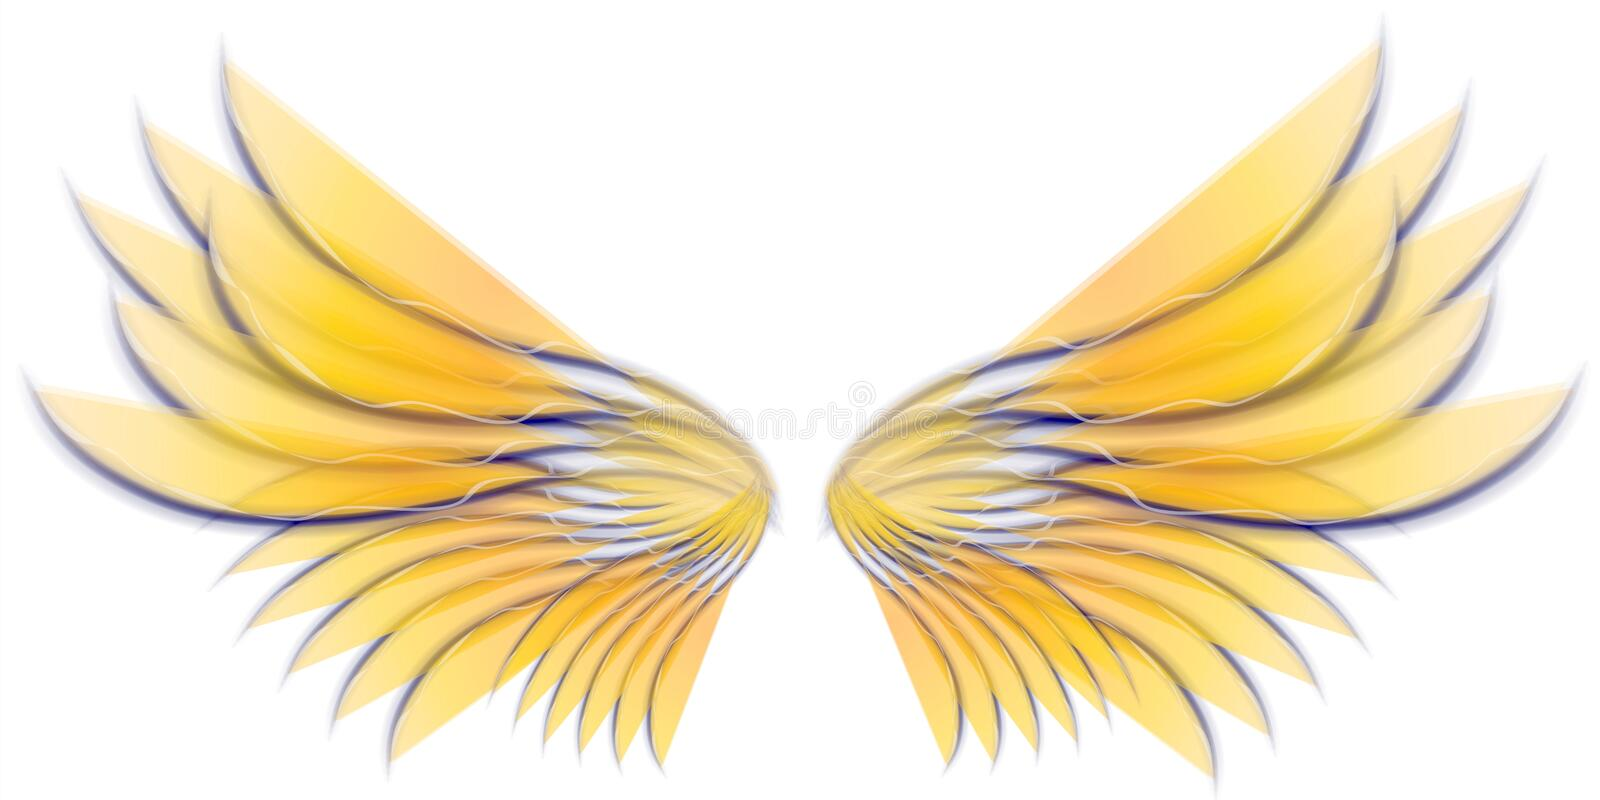 Angel Bird or Fairy Wings 3. A clip art illustration of isolated fairy, angel or bird wings in golden yellow to white colors royalty free illustration